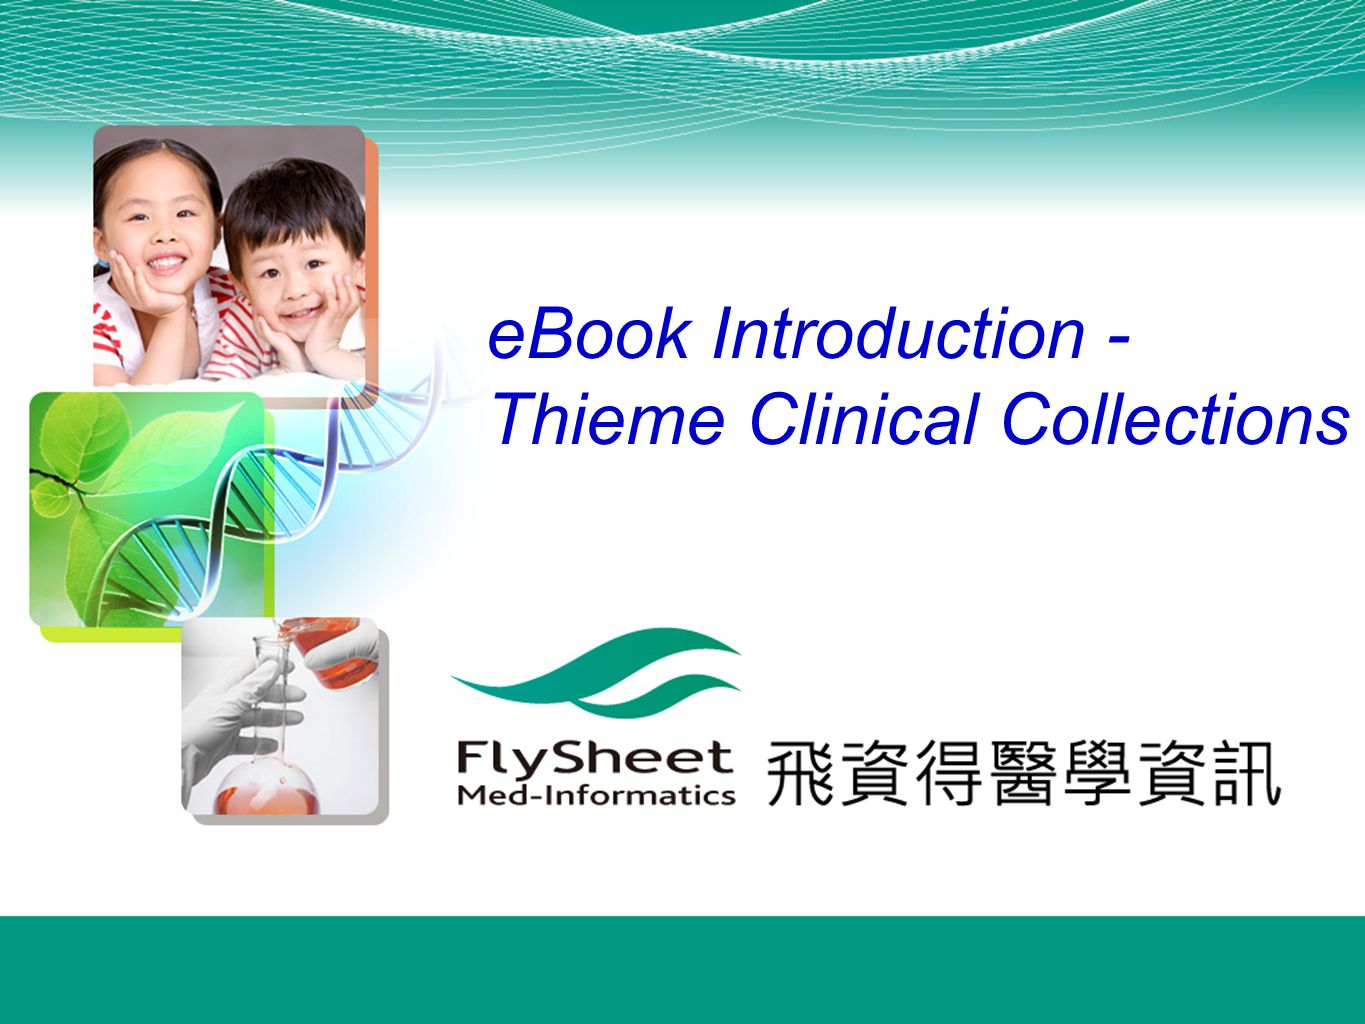 eBook Introduction - Thieme Clinical Collections